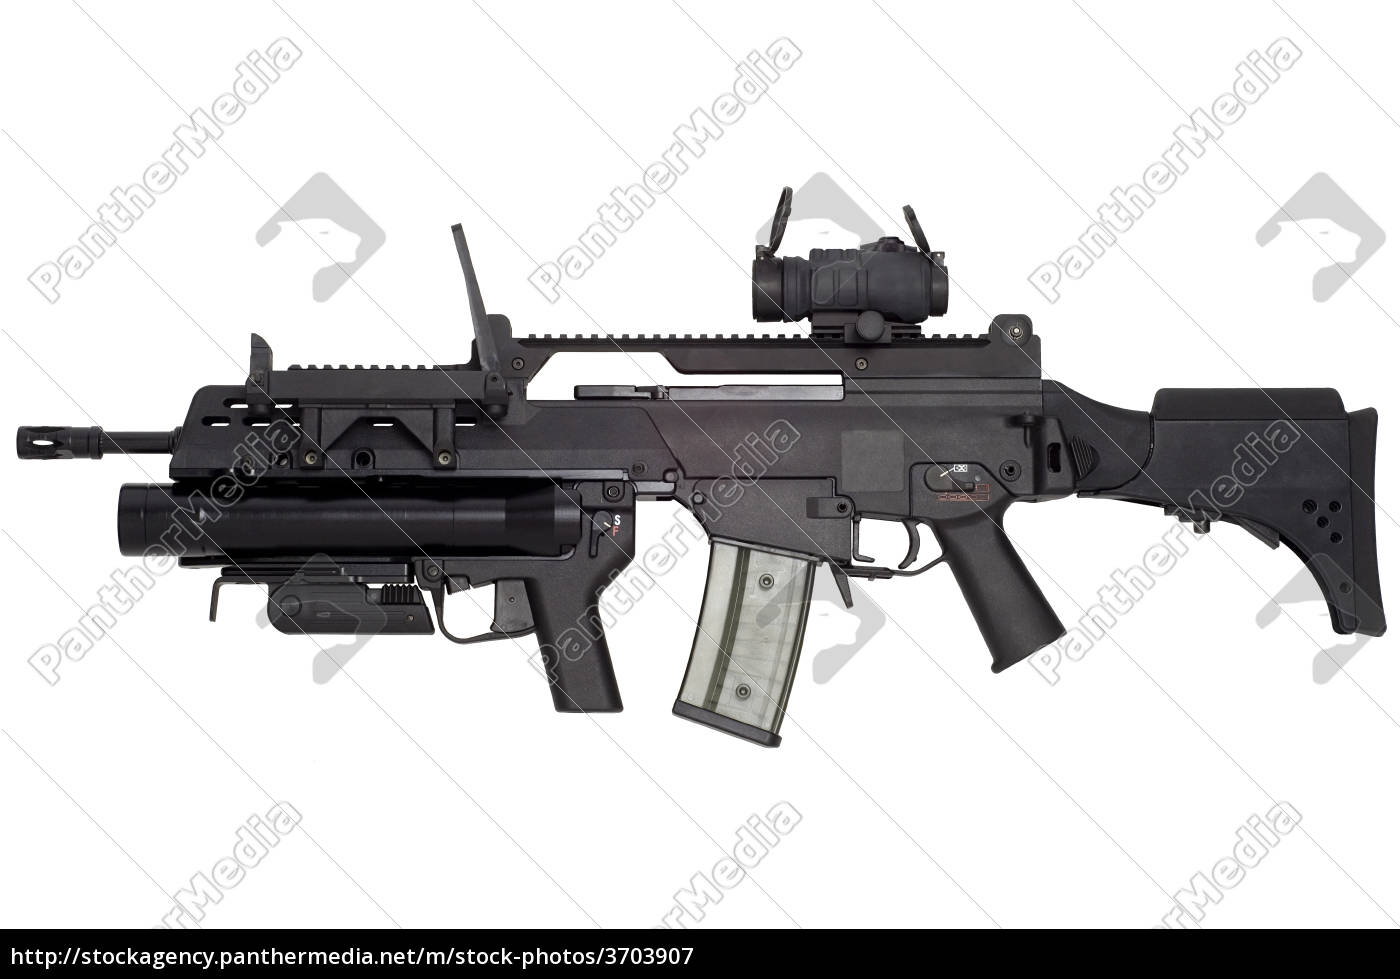 Stock Photo 3703907 - Automatic weapon G36